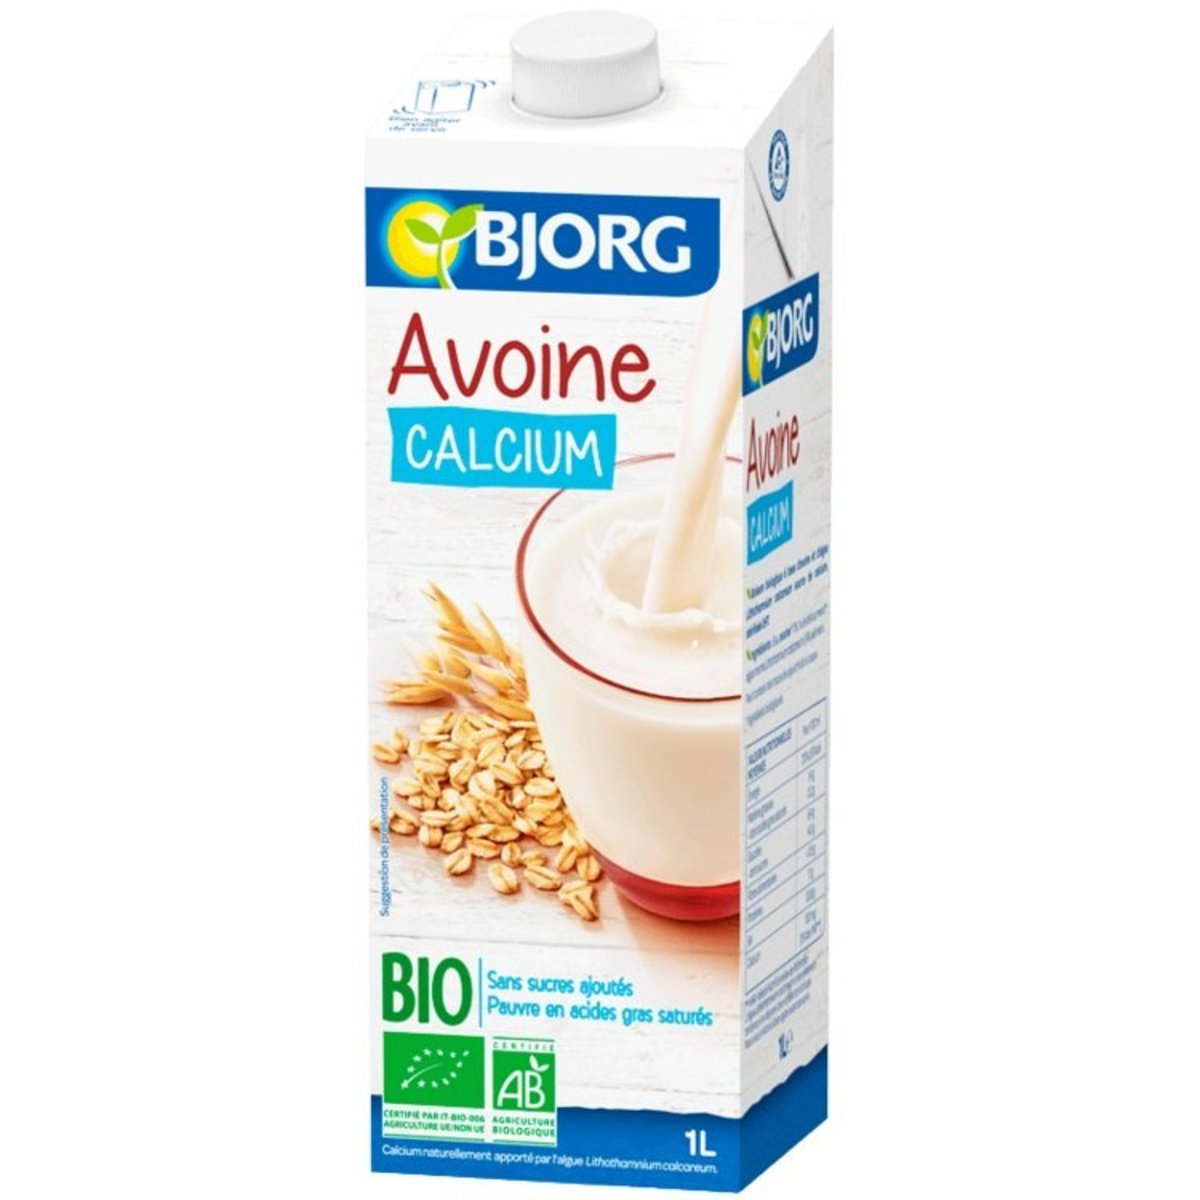 Organic Oat Drink with Calclum(1L)-(1pc)-Italy BJ3014957